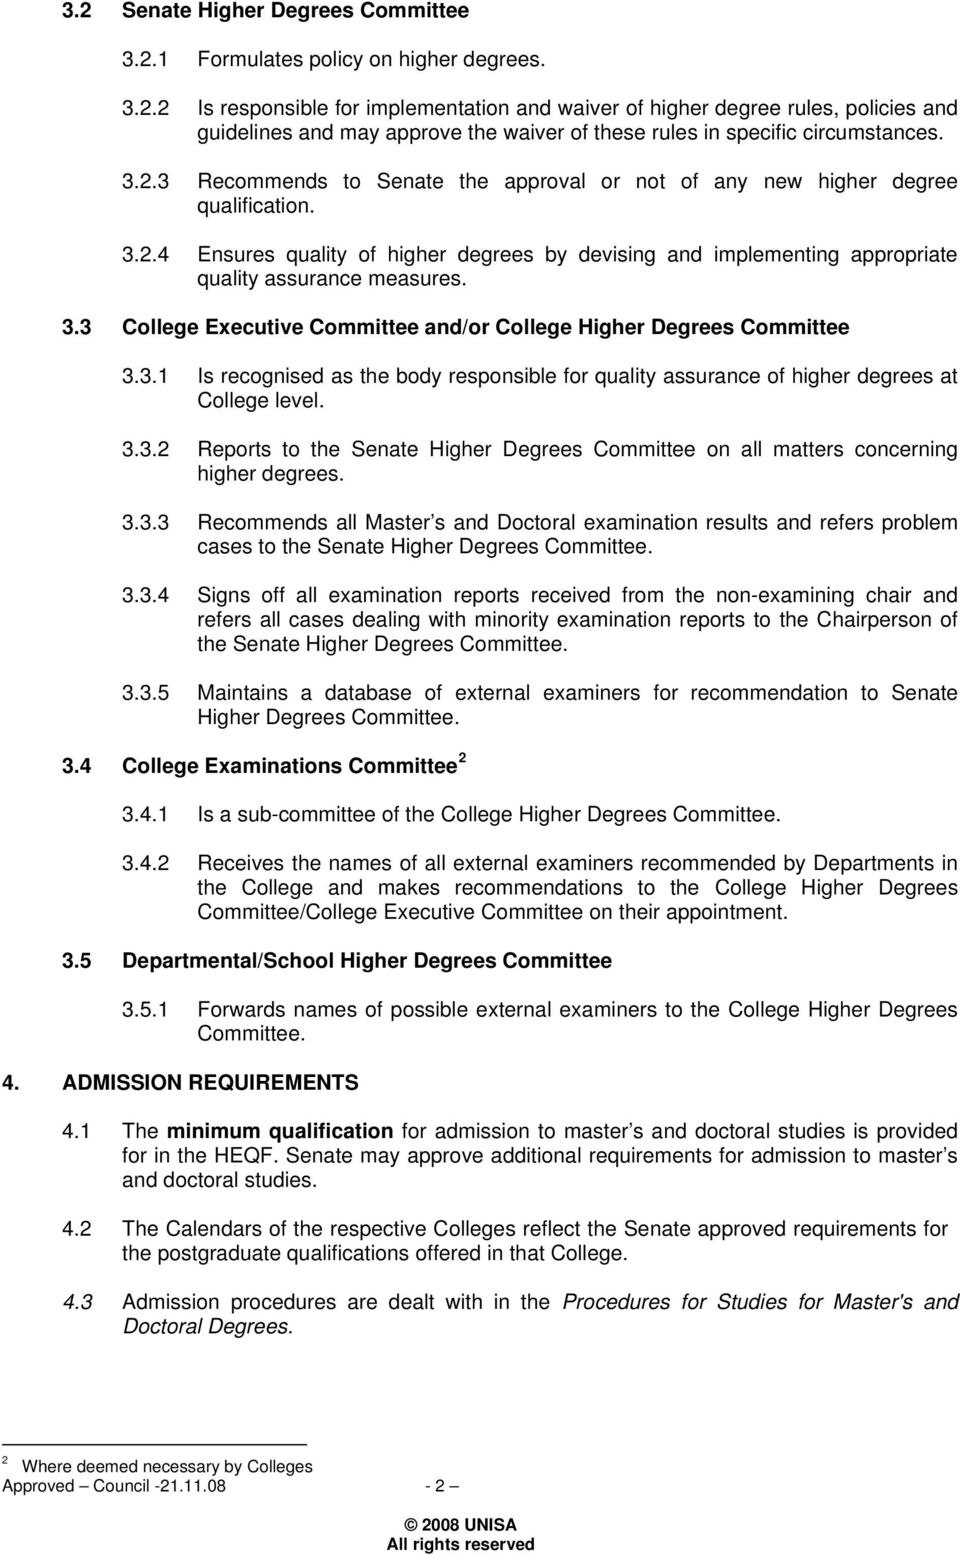 3.1 Is recognised as the body responsible for quality assurance of higher degrees at College level. 3.3.2 Reports to the Senate Higher Degrees Committee on all matters concerning higher degrees. 3.3.3 Recommends all Master s and Doctoral examination results and refers problem cases to the Senate Higher Degrees Committee.